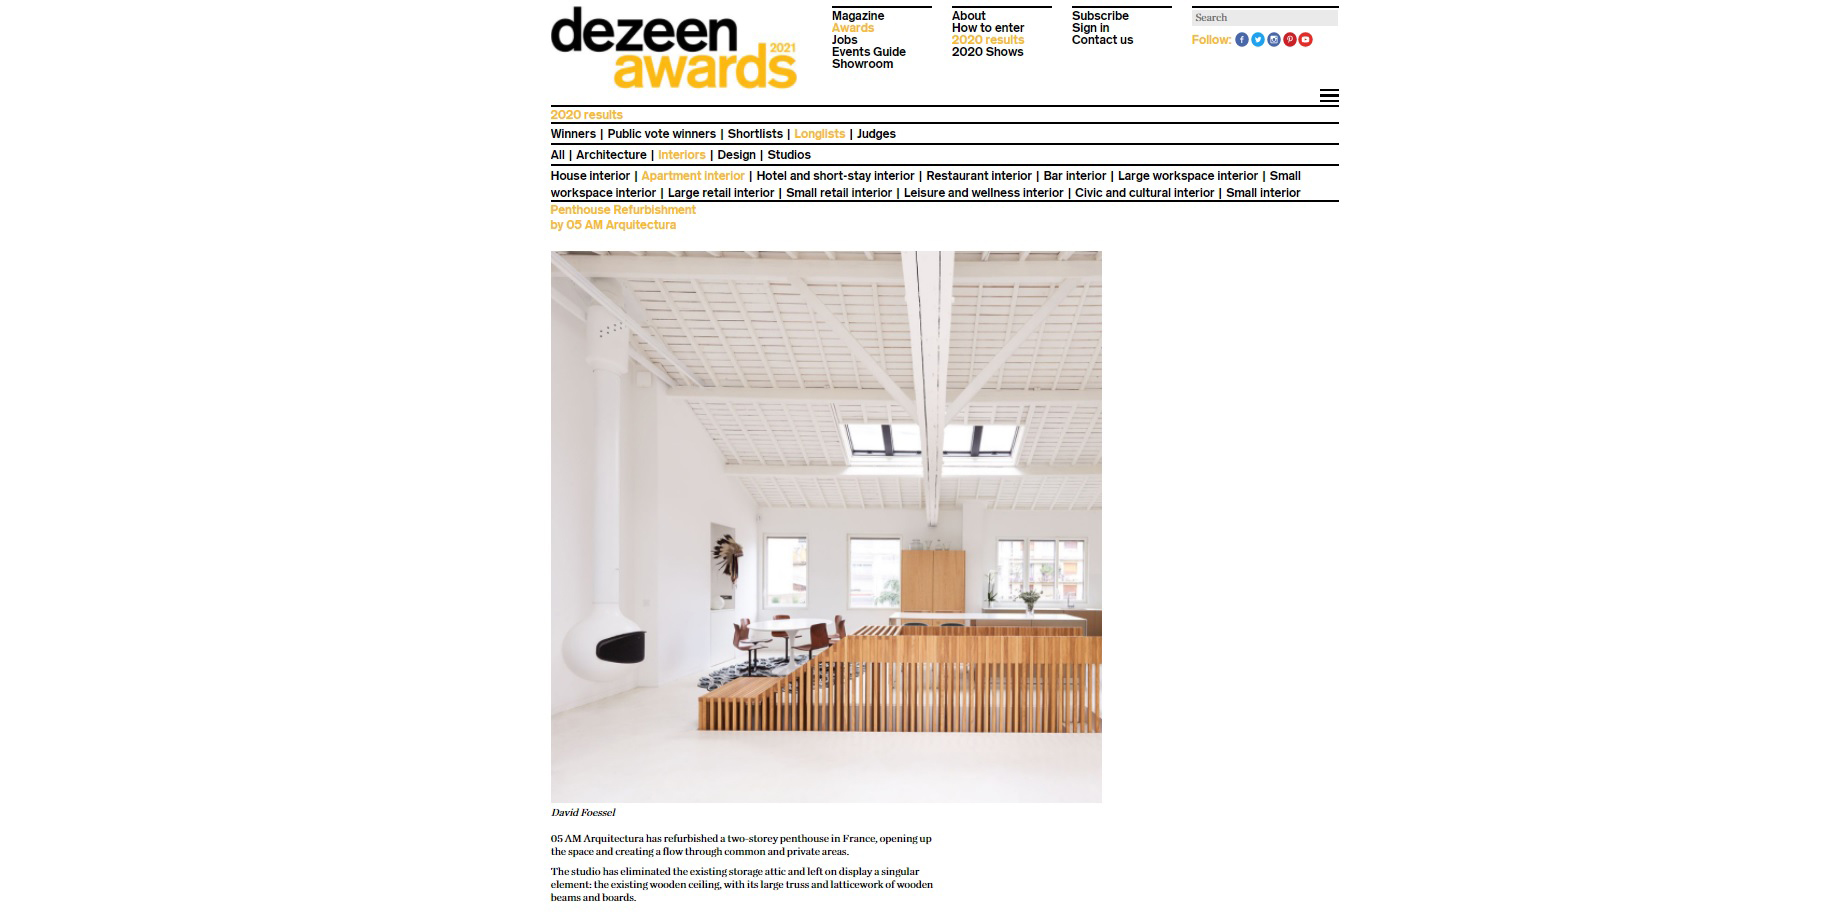 Longlisted to the Interior @Dezeen Awards! with the refurbishment of a penthouse in Paris XXVIème. Very happy!⁠ #1702paris16eme #05ambuilt #05amarquitectura #interiordesignparis #interiordesign #architecture #arquitectura #architektur #архитектура #amenagementinterieur #arquitecturagirona #05ambuilt #davidfoessel